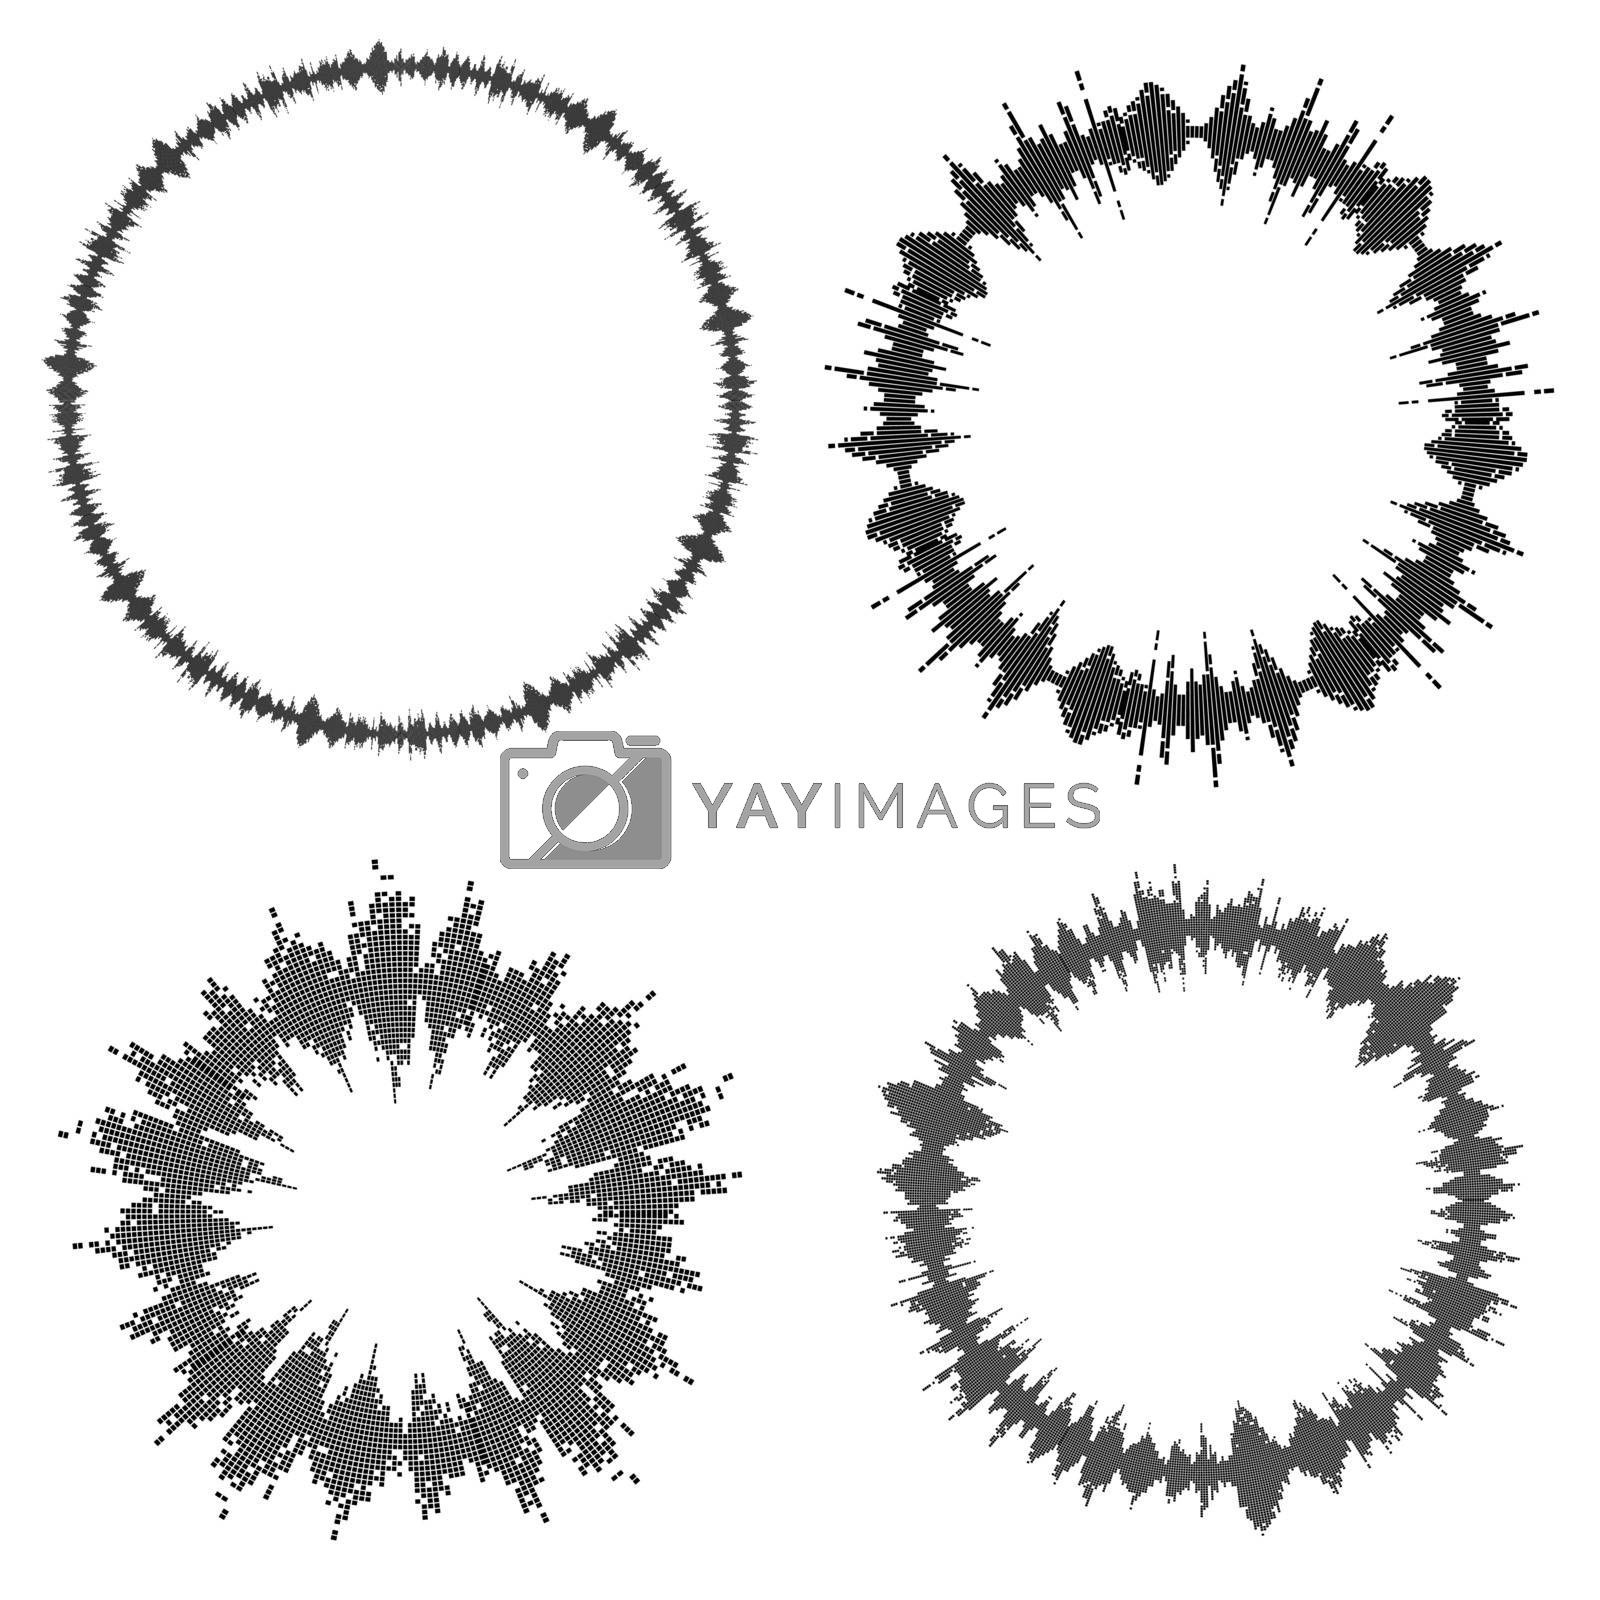 Equalizer ring. Round audio chart set. Music beat bar isolated on white. Collection of electronic abstract element of sound volume wave. Modern clip art illustration of speaker frequency range.